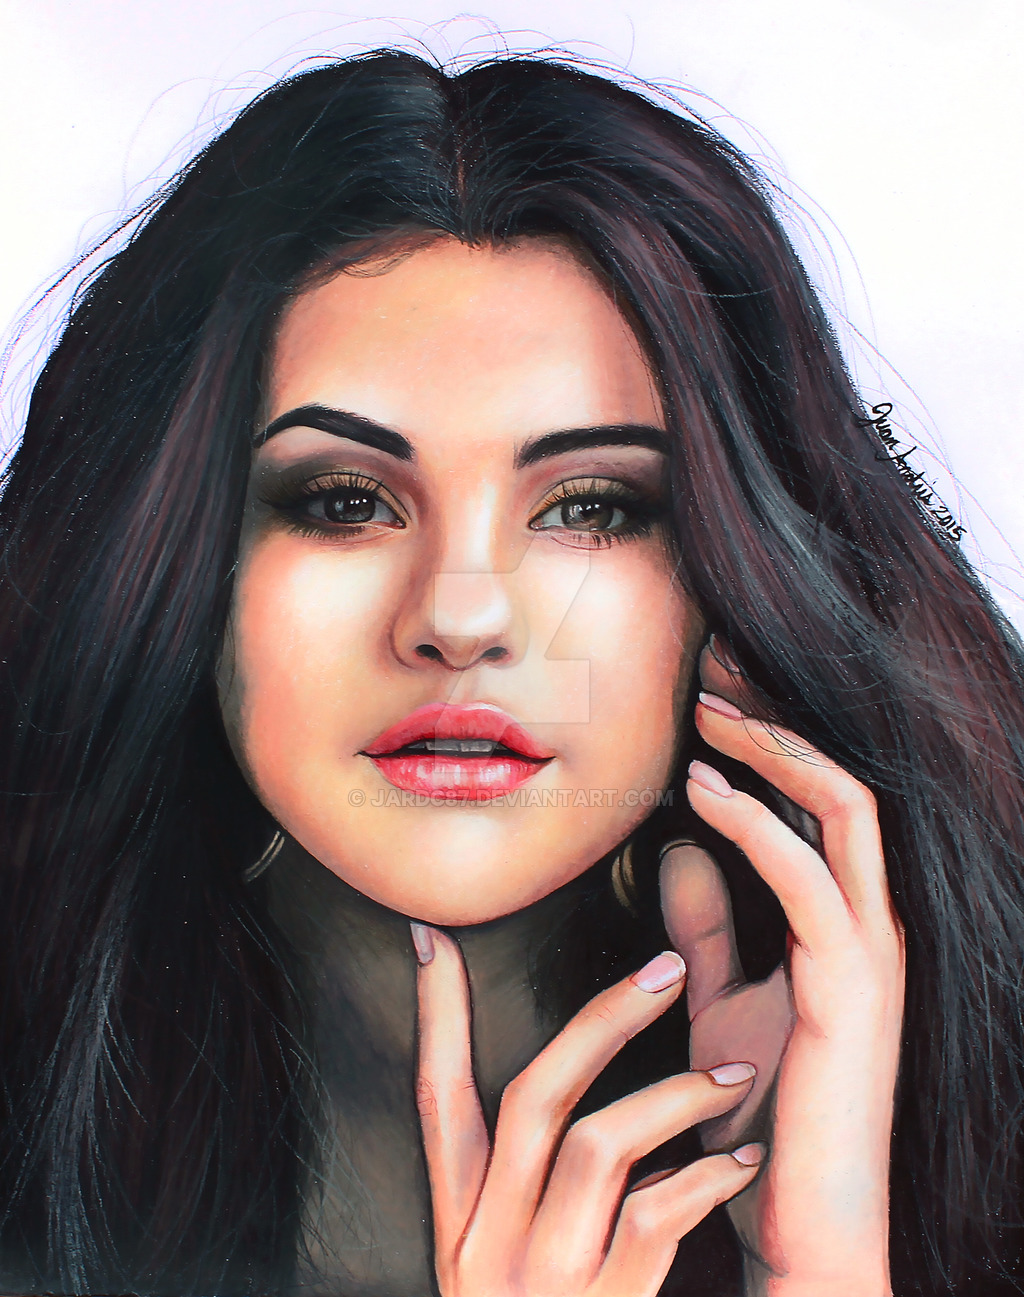 Drawn portrait selena gomez Jardc87 Selena by on by